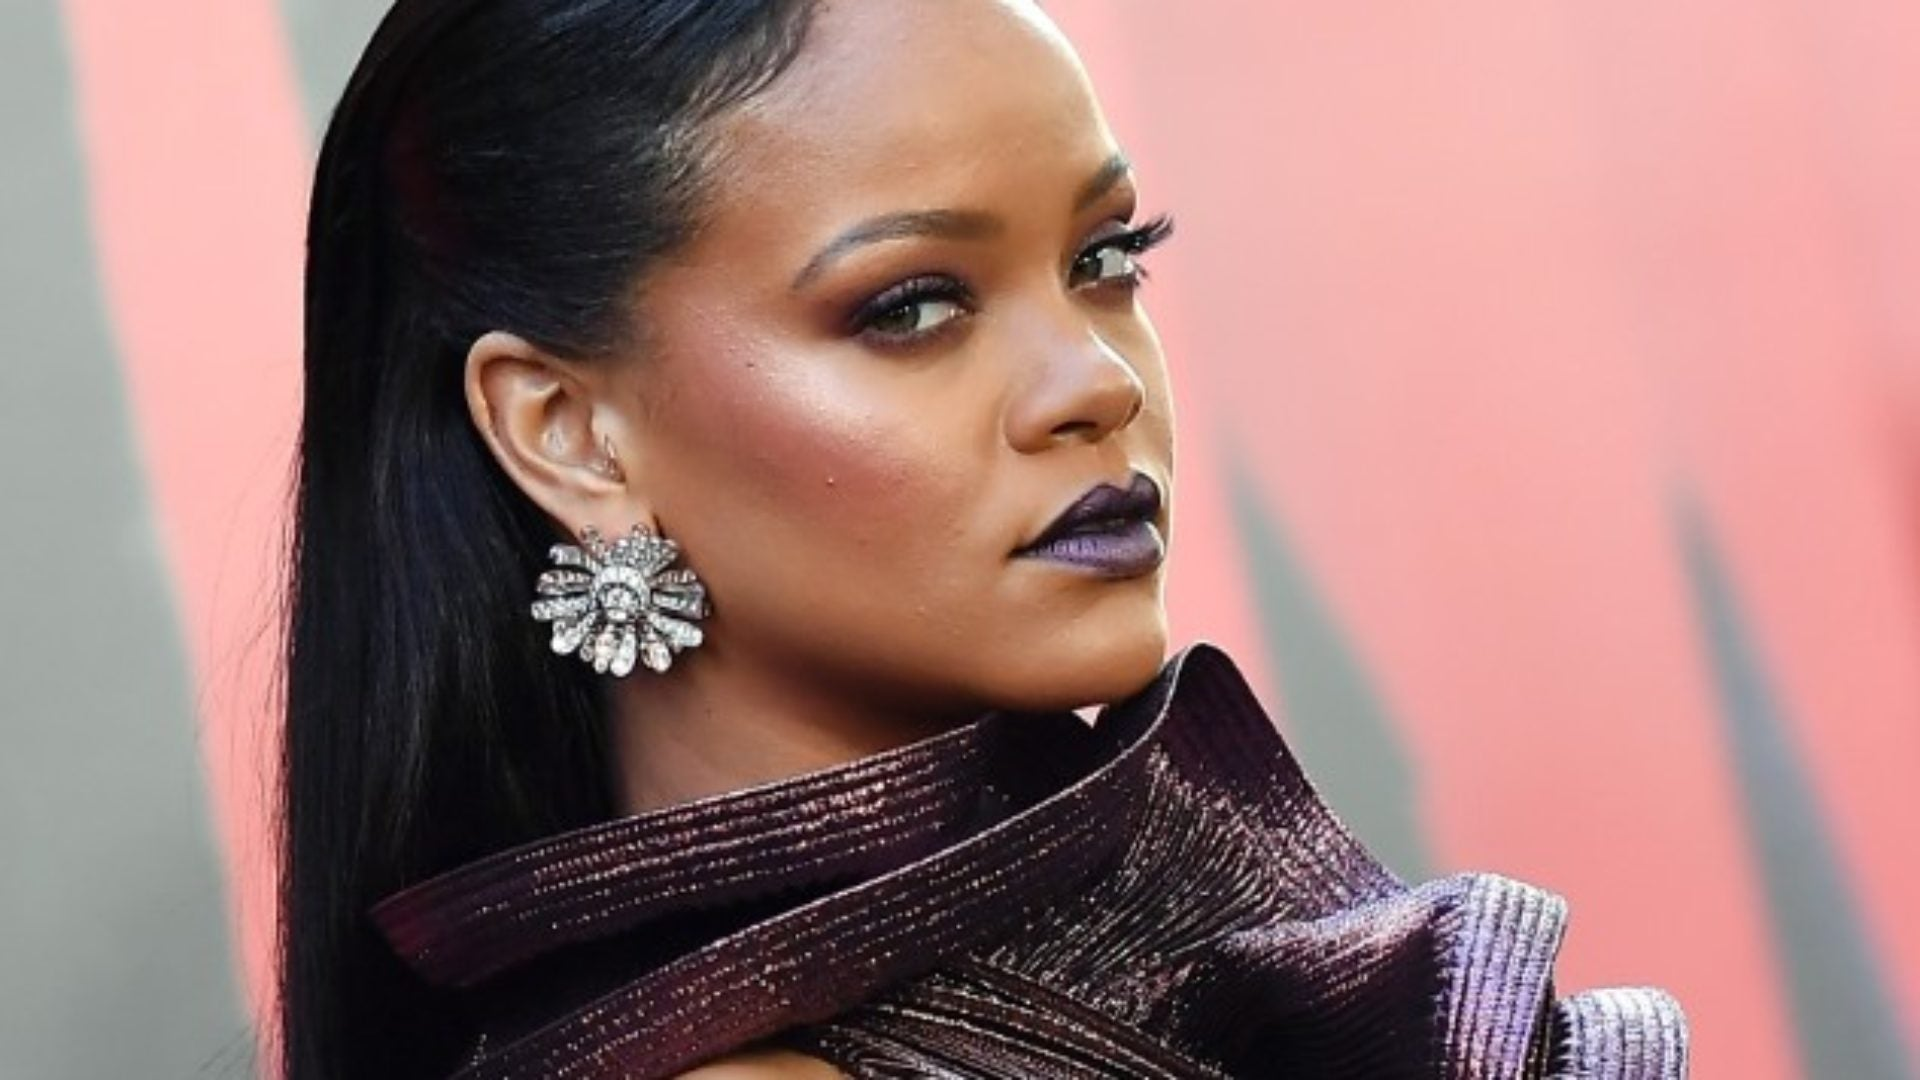 Rihanna Sends A Message About Beauty With Website Photos Showing Model's Scars